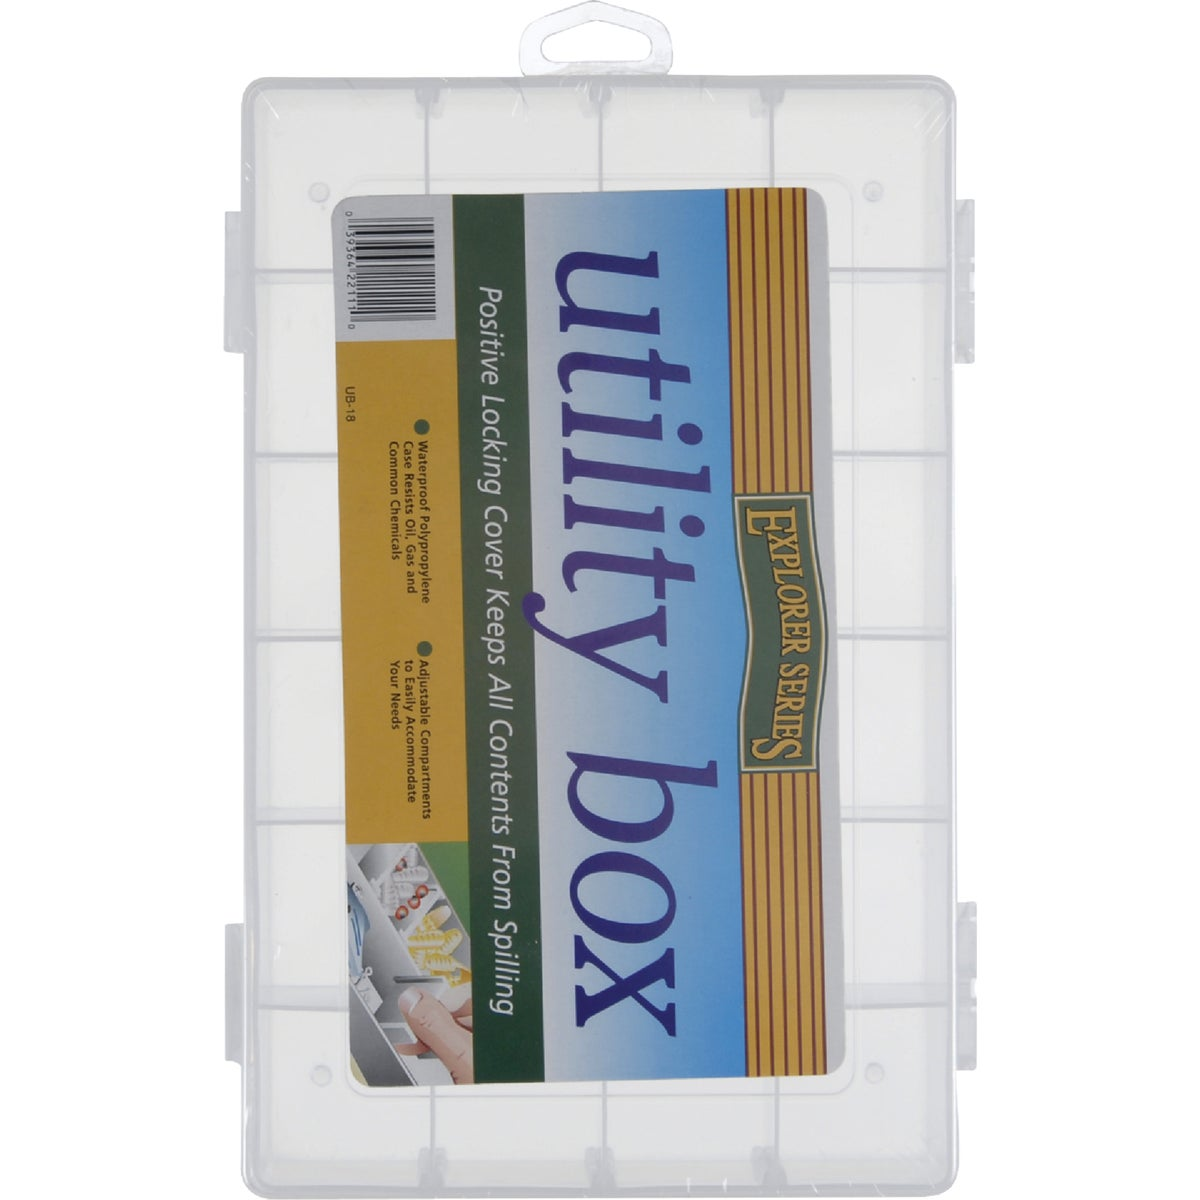 24 SECTION UTILITY BOX - UB18 by South Bend Sptg Good